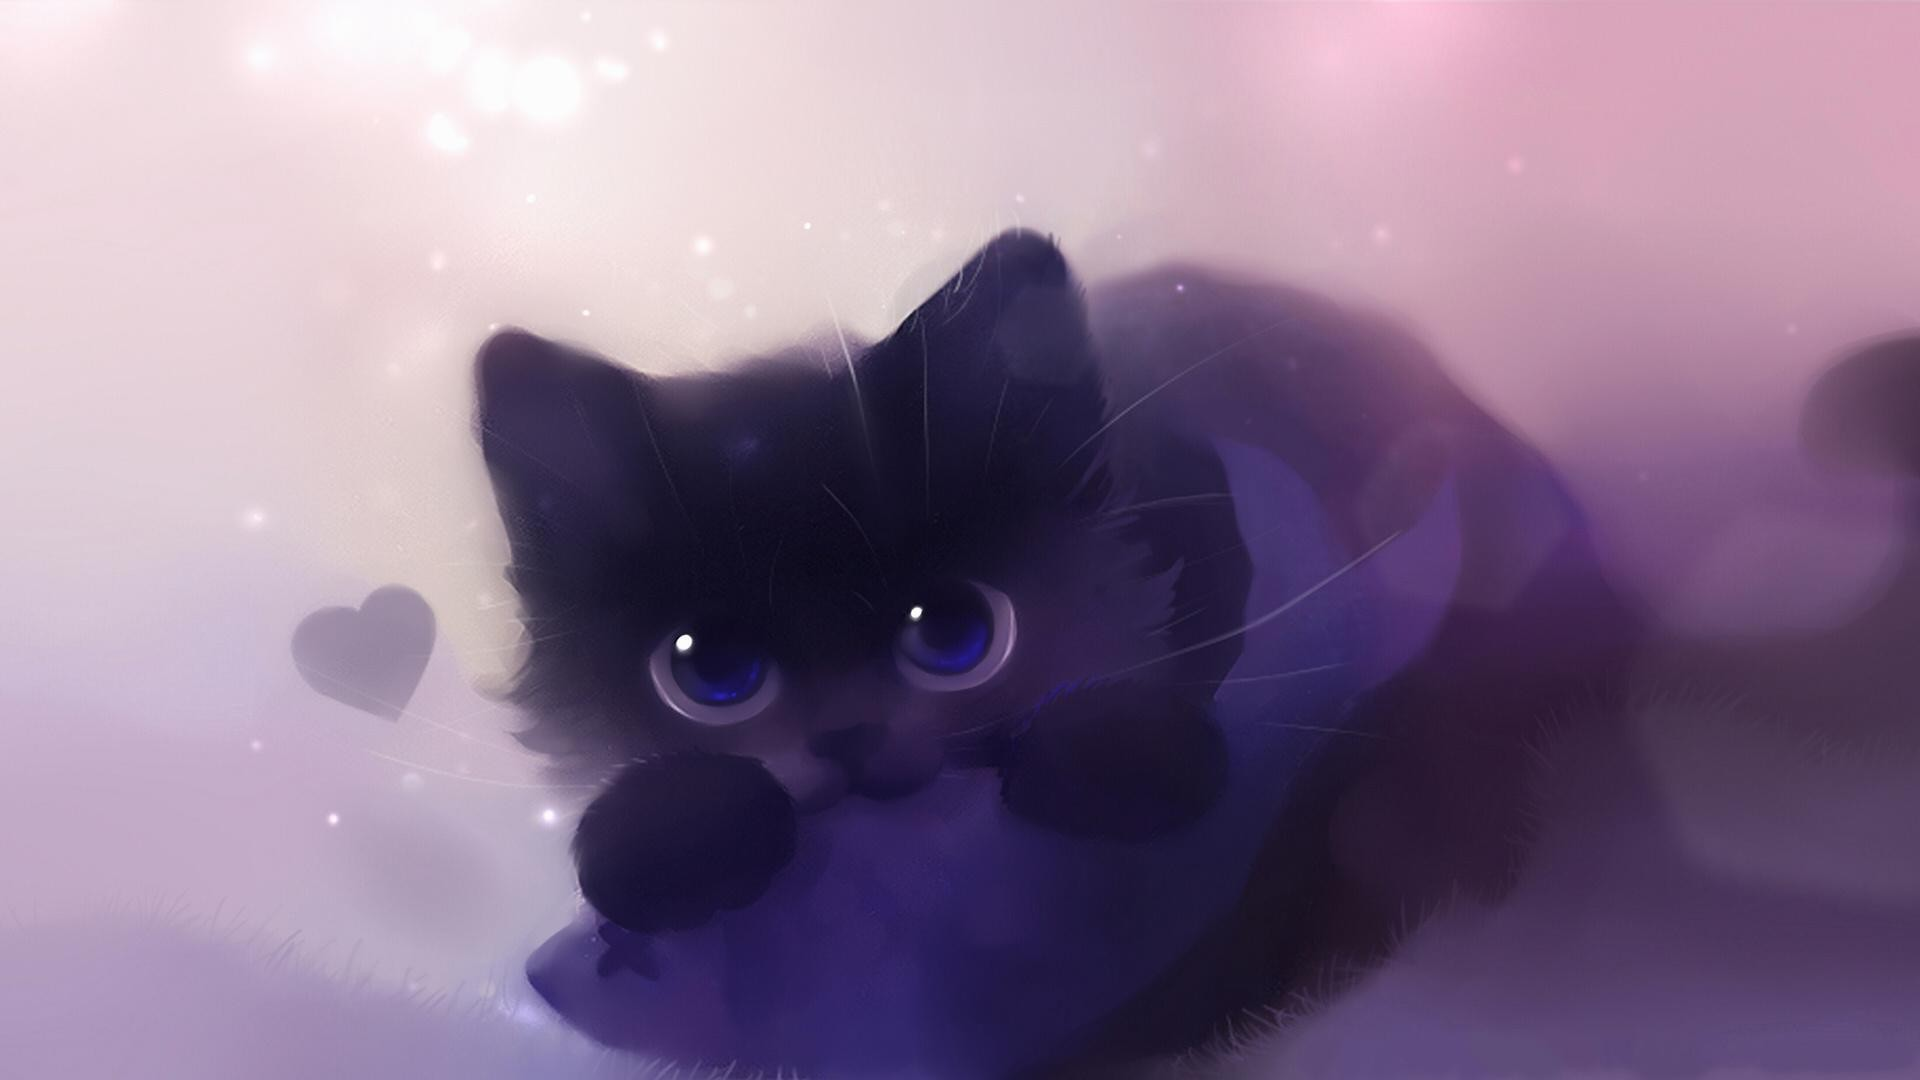 Warrior Cats Wallpaper Download Free Awesome High Resolution